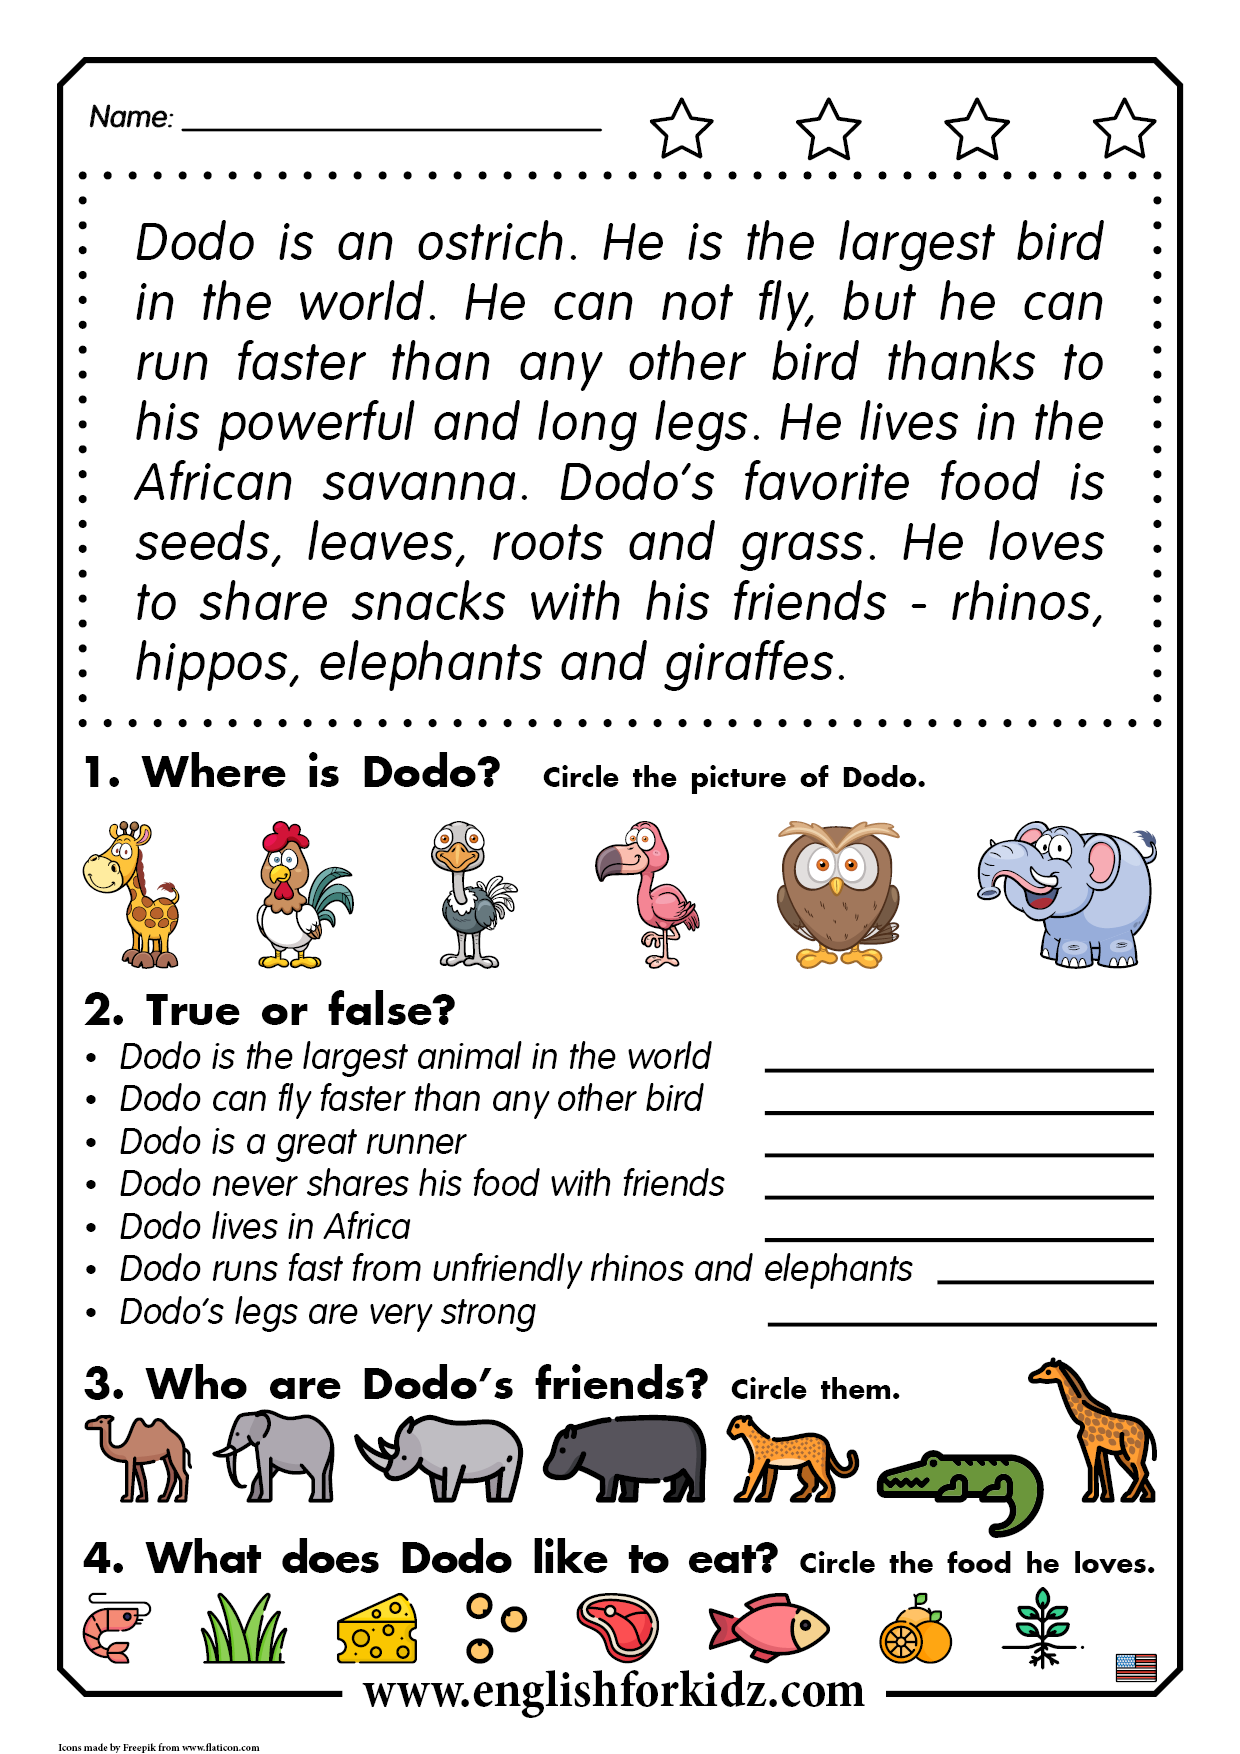 Reading comprehension passage   Reading comprehension worksheets [ 1754 x 1240 Pixel ]